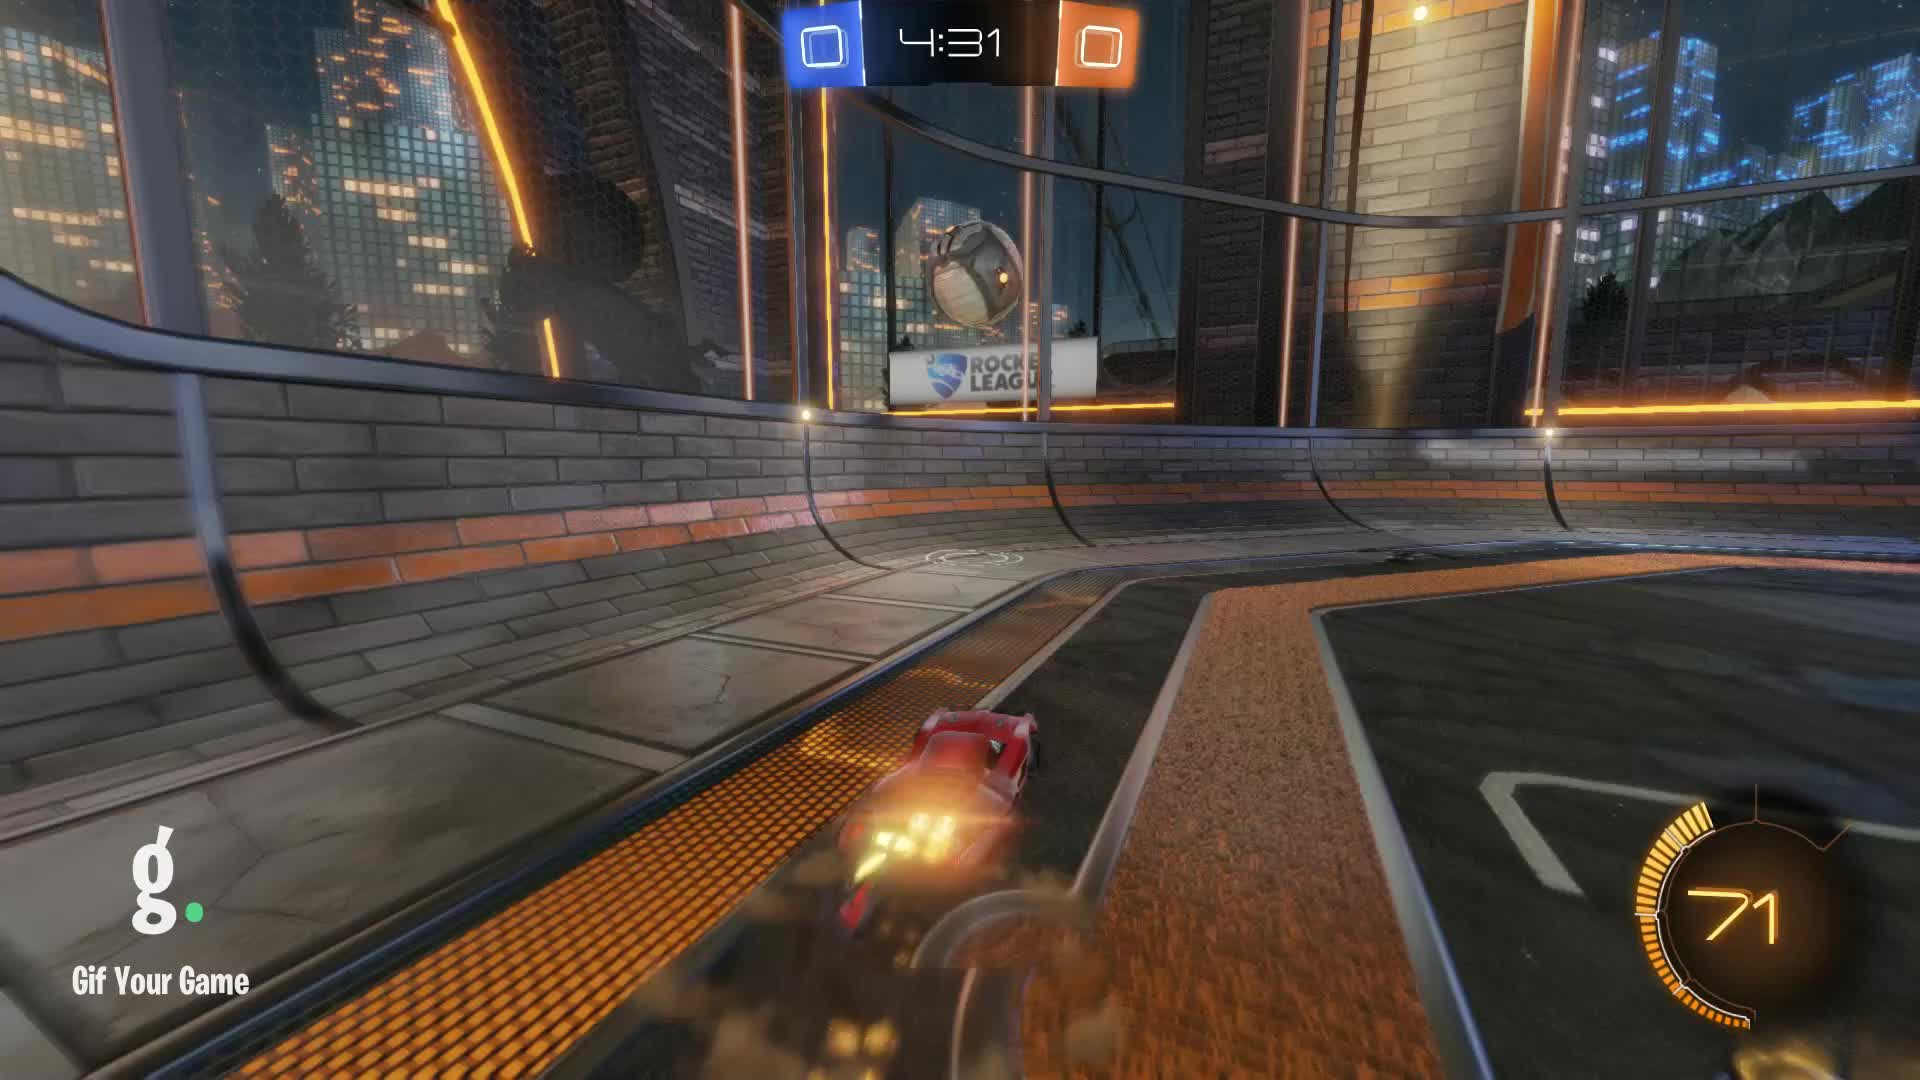 Gif Your Game, GifYourGame, Goal, Rocket League, RocketLeague, SwolSquirrel, Goal 1: SwolSquirrel GIFs